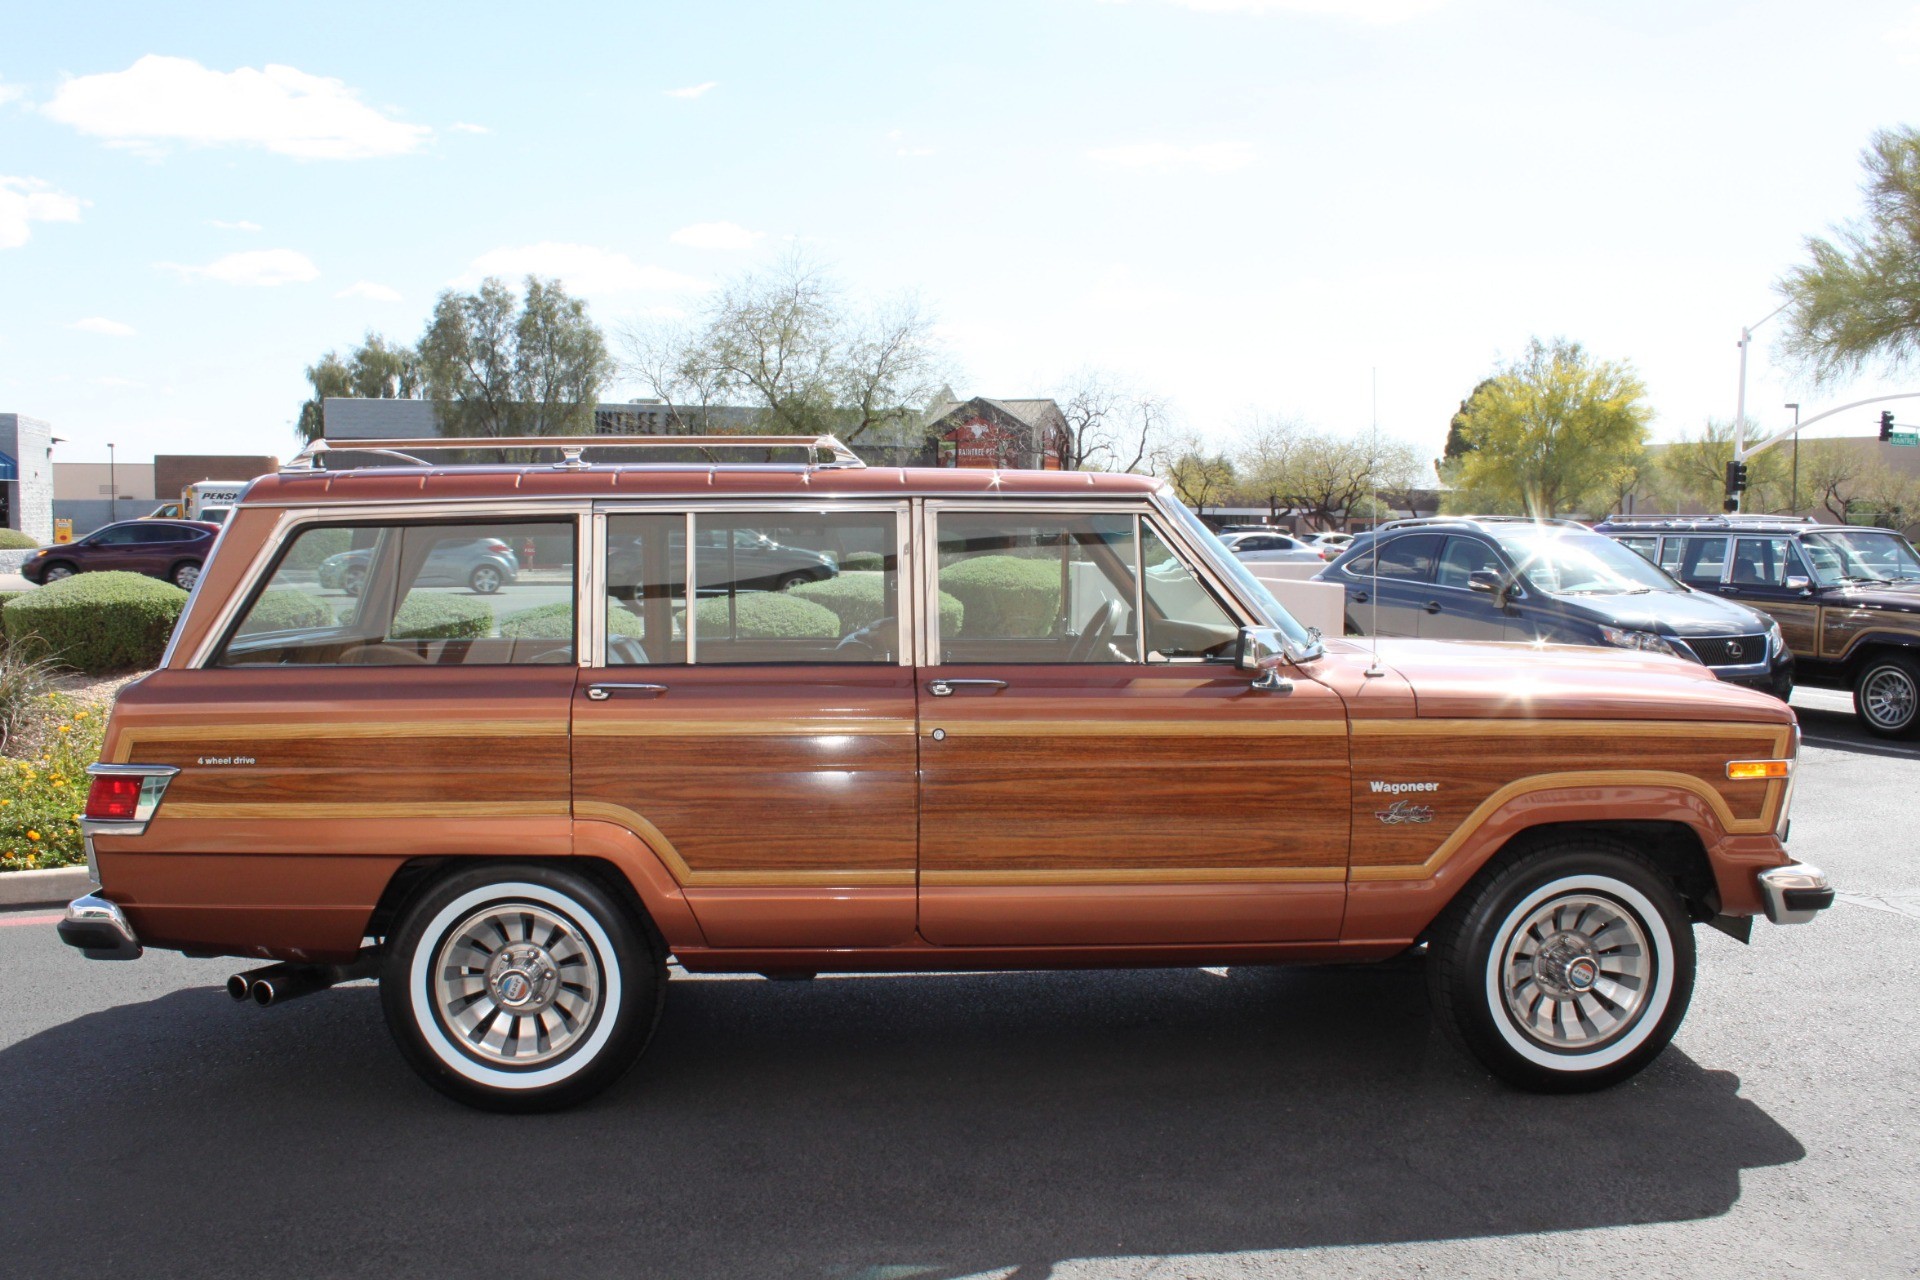 Used-1982-Jeep-Wagoneer-Limited-4WD-Mercedes-Benz